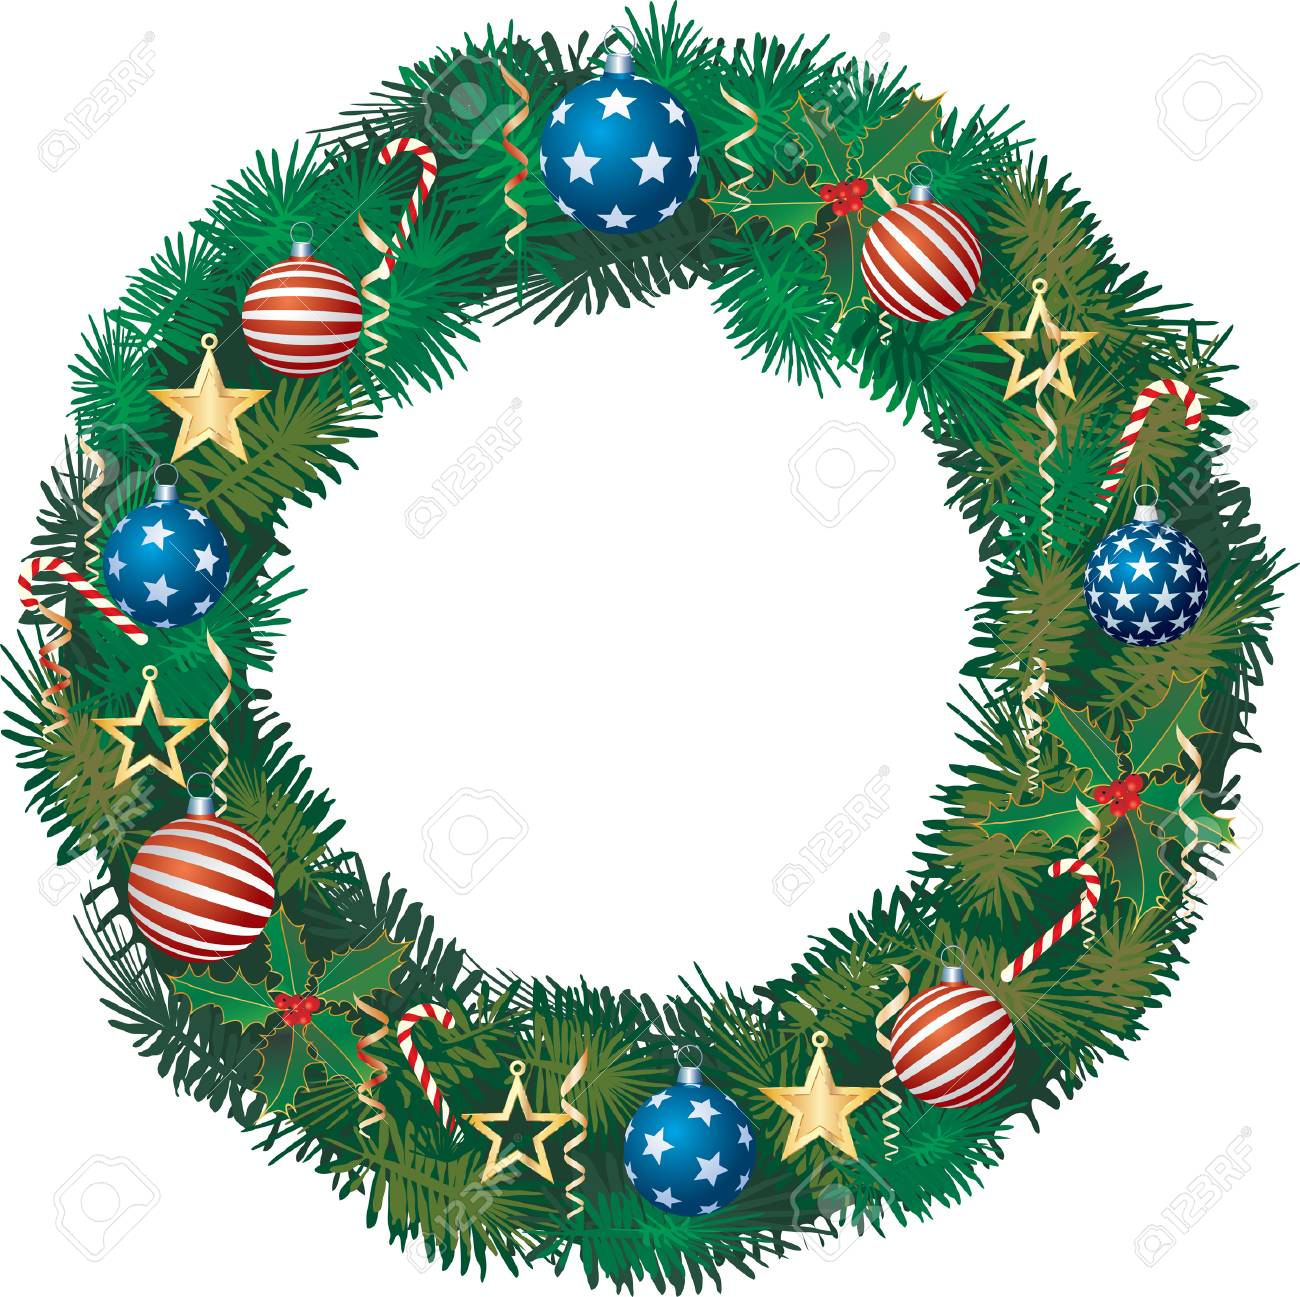 Patriotic Christmas.Patriotic Christmas Garland With Balls And Golden Stars